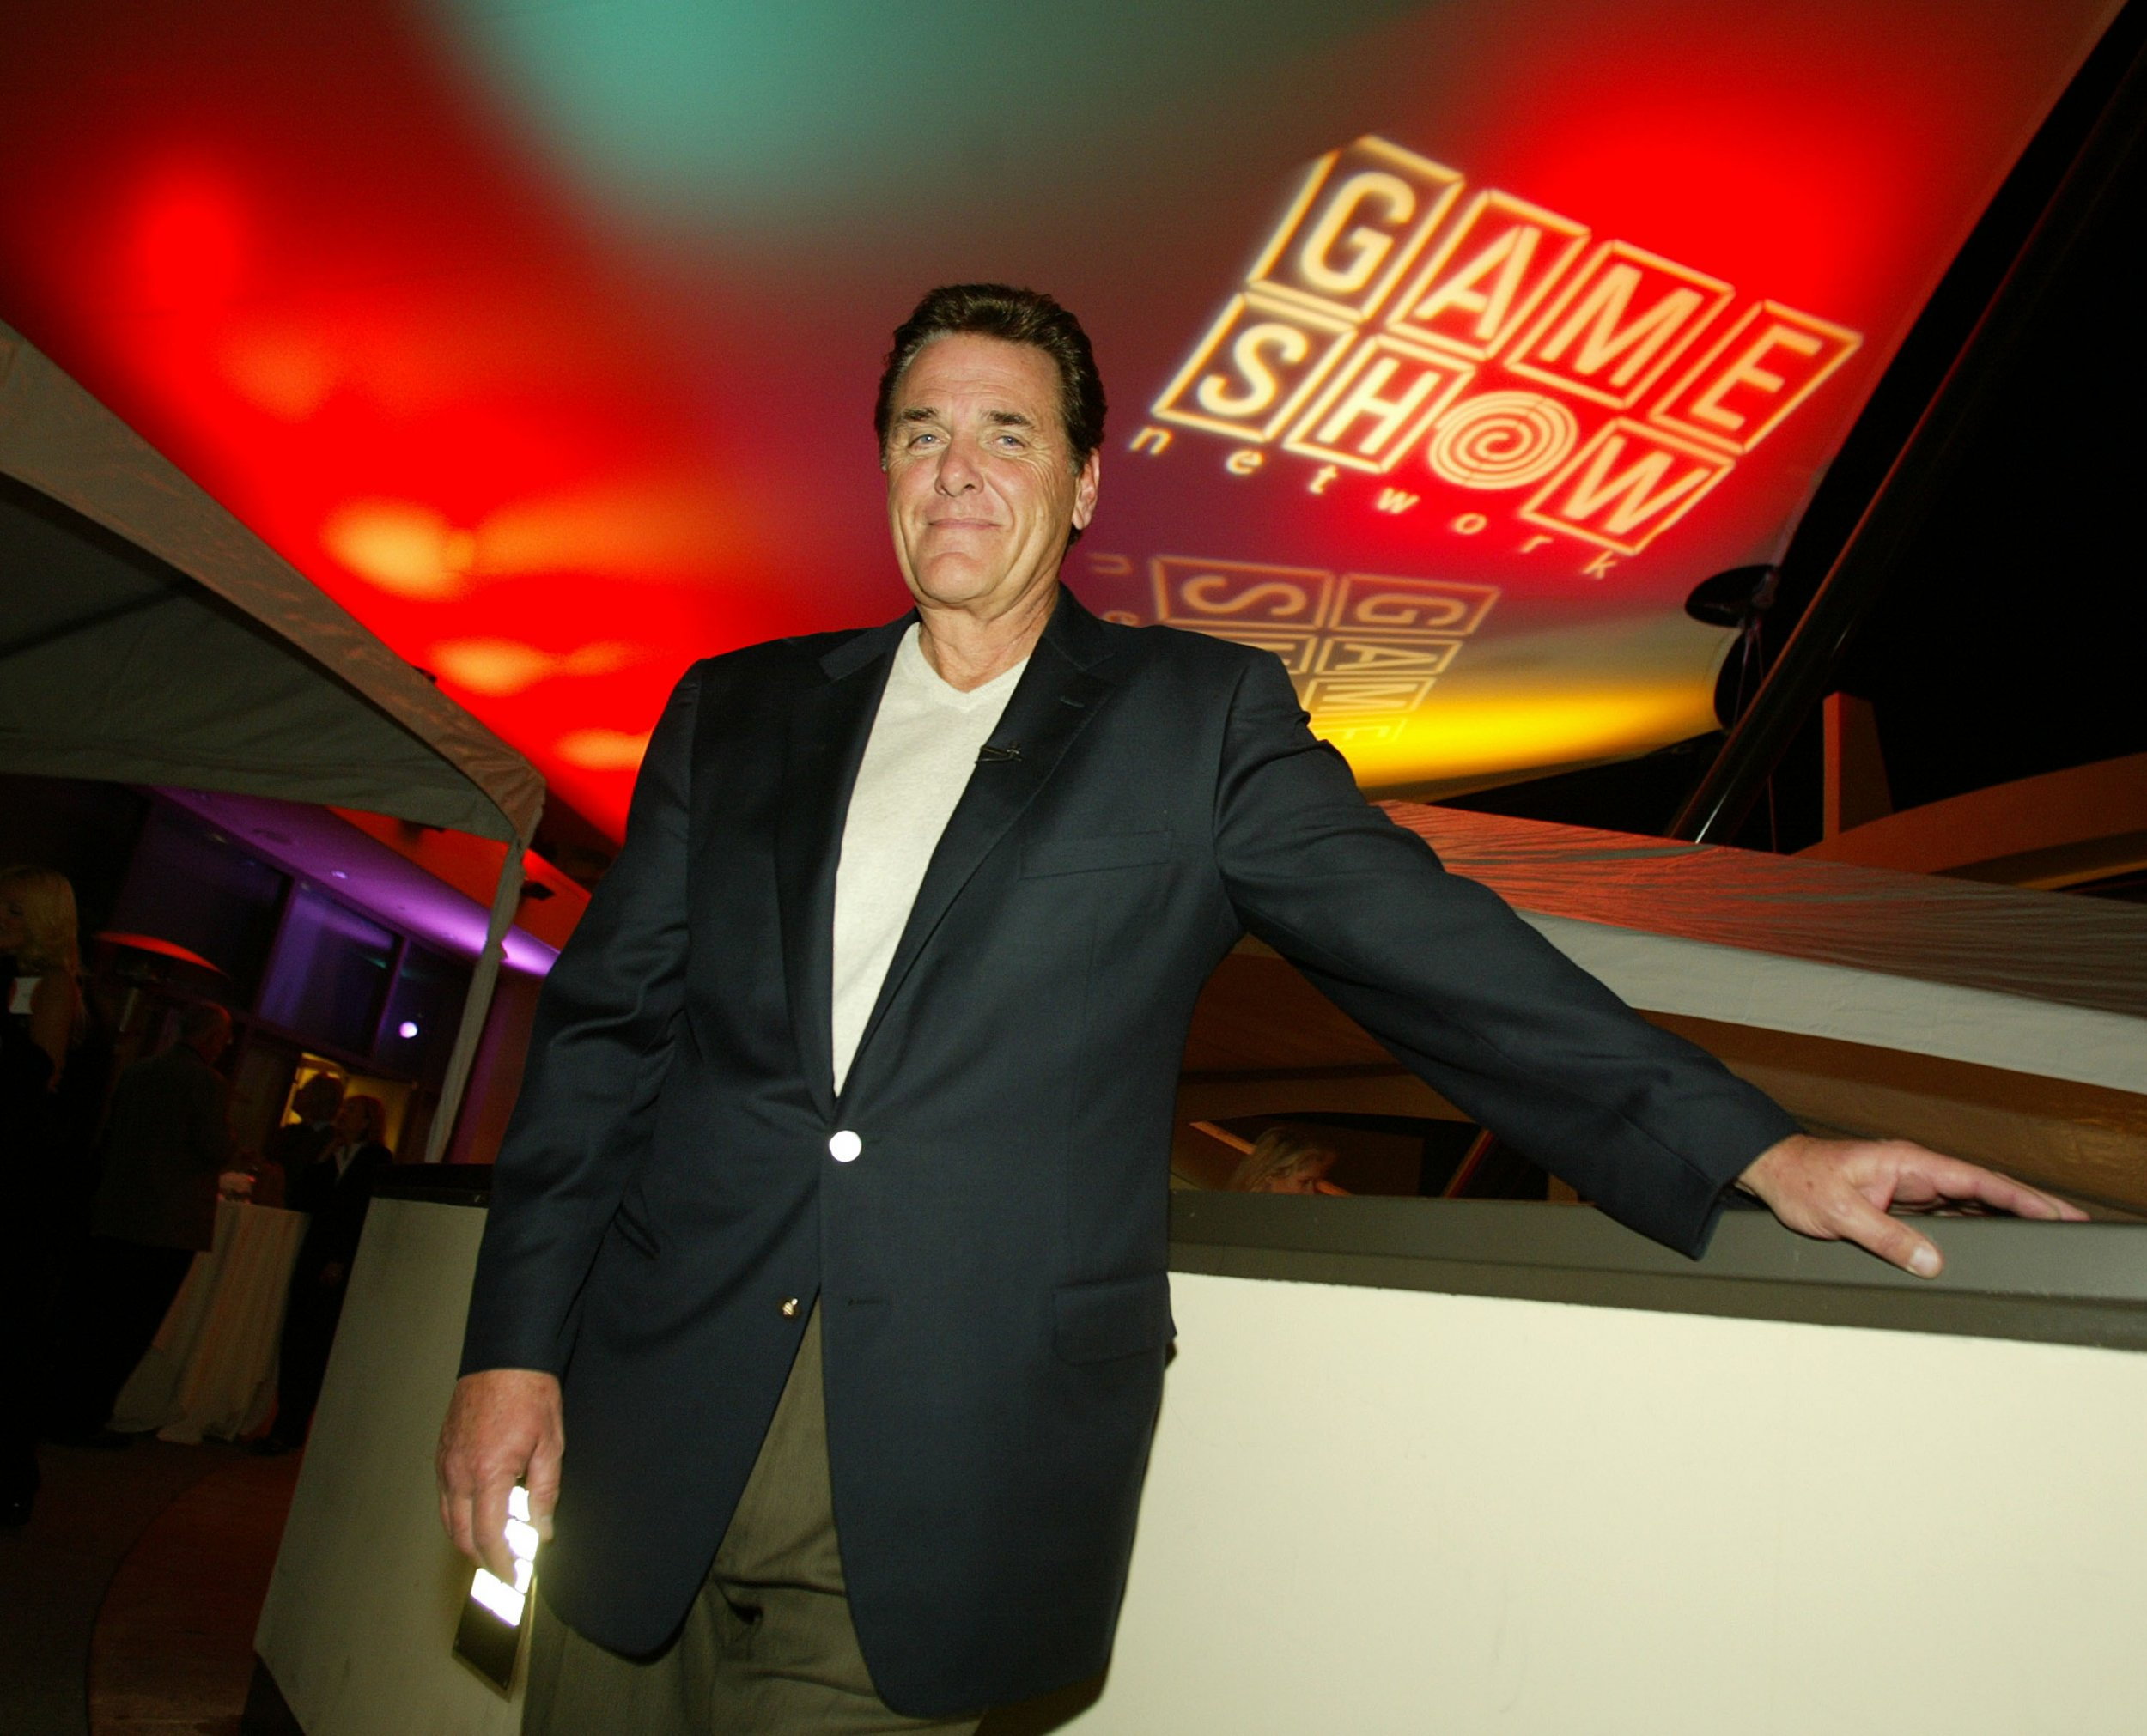 Chuck Woolery, game show host and political commentator